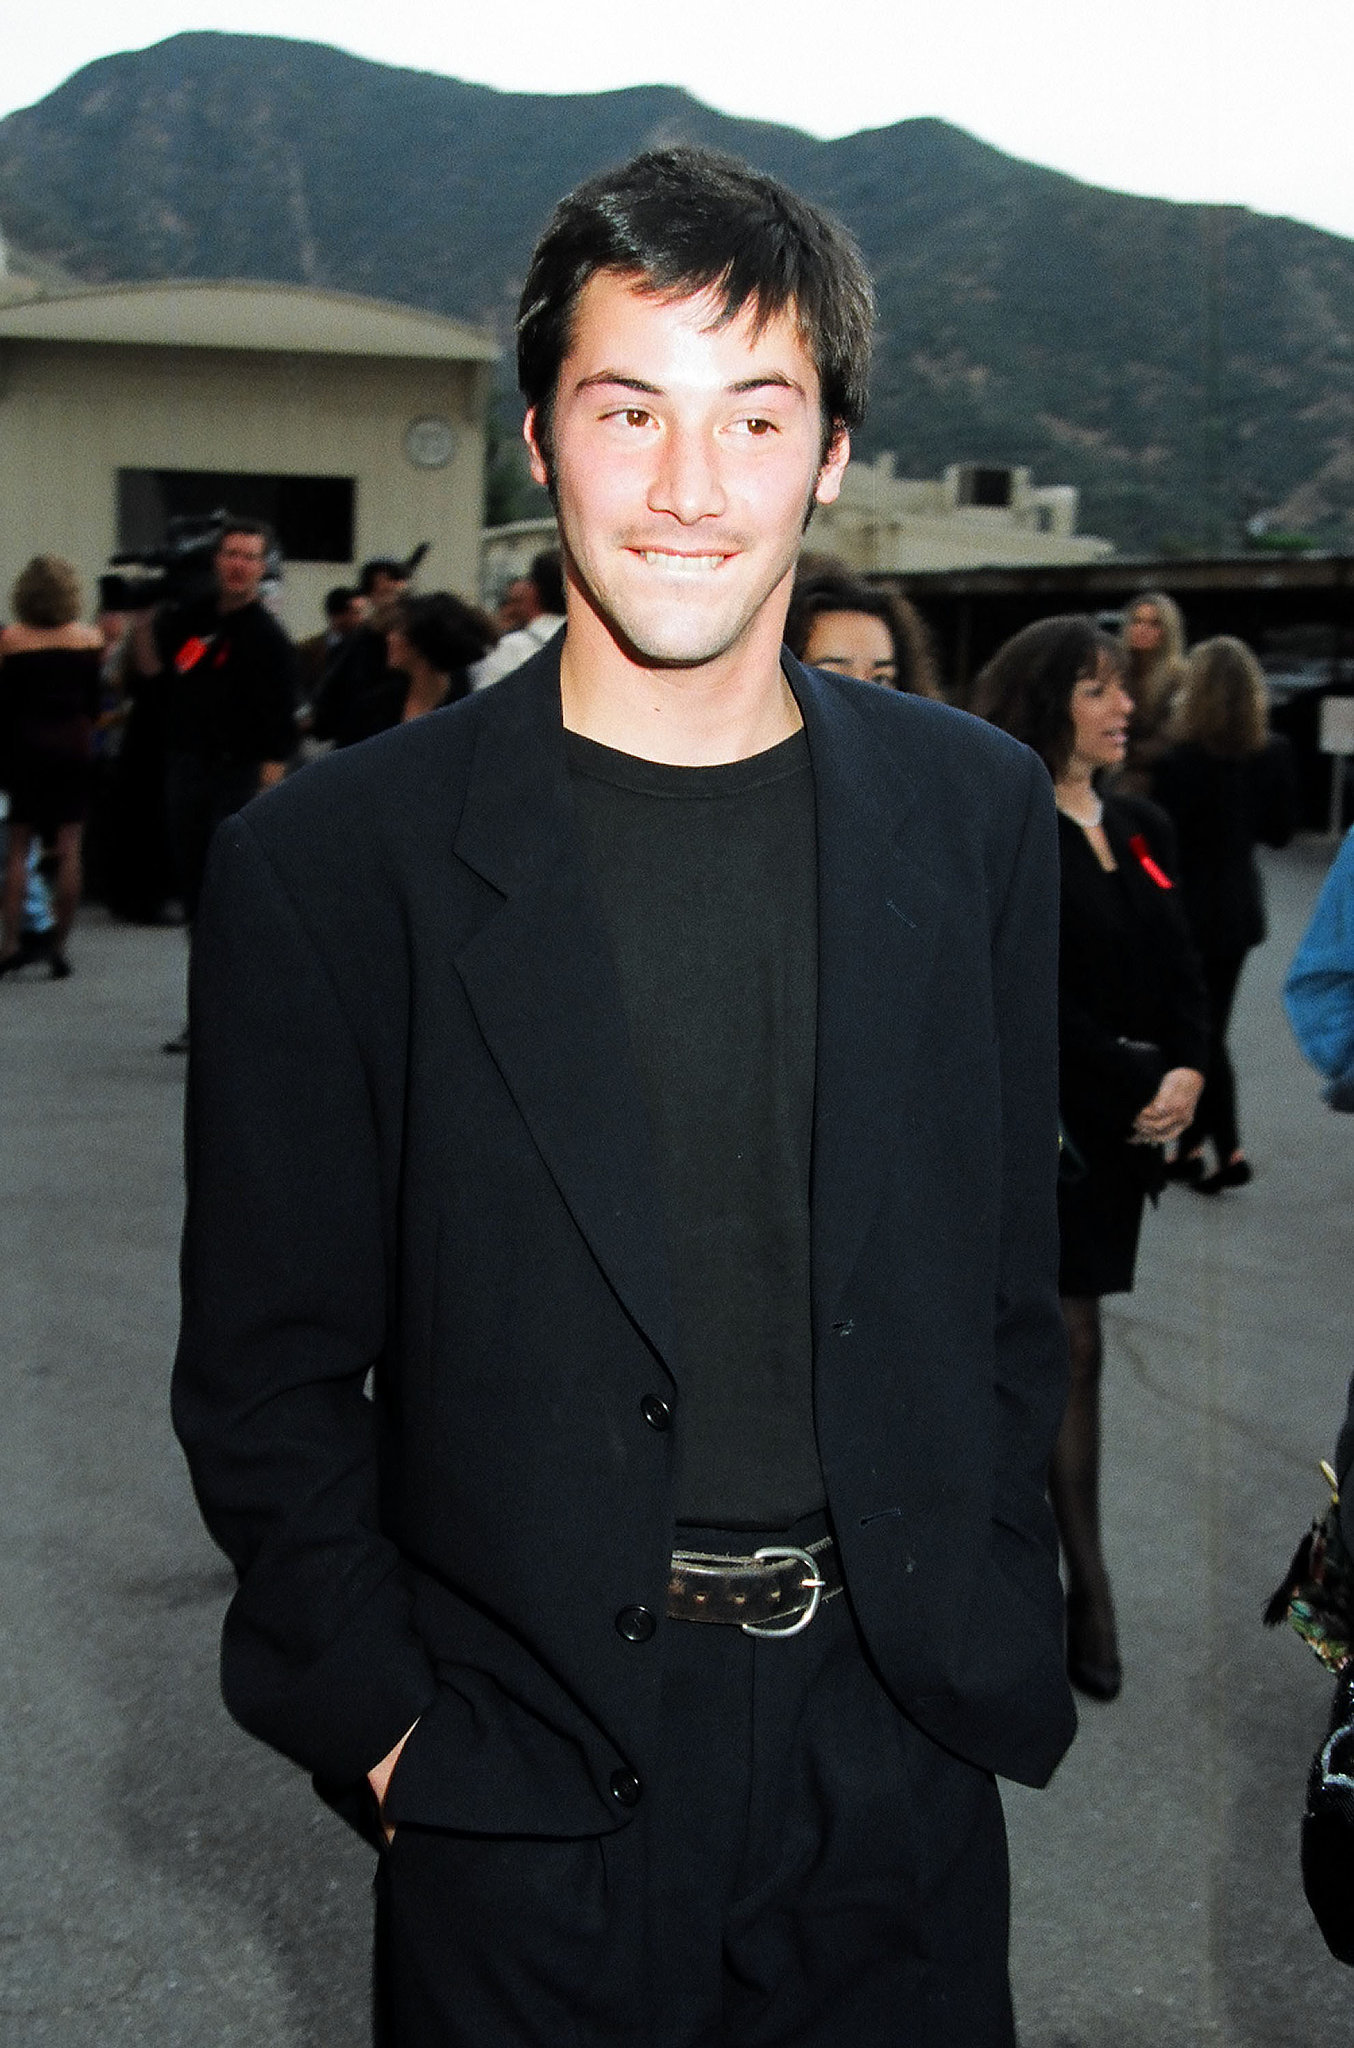 Keanu Reeves won most desirable male.